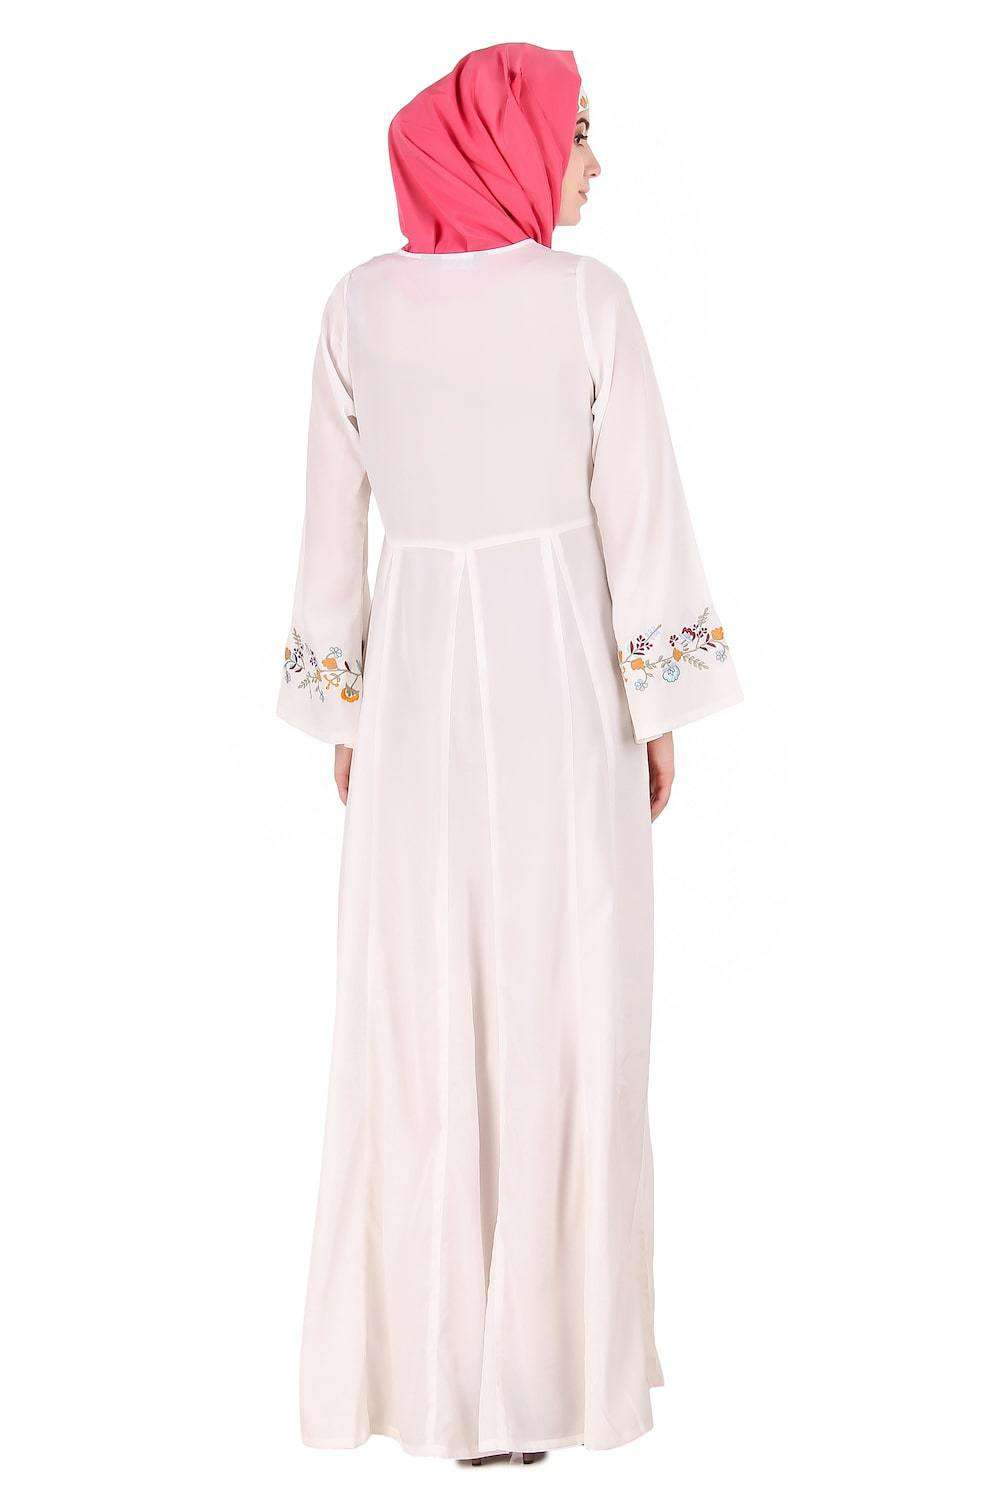 Colorful Embroidered Bell Sleeve White Abaya Back